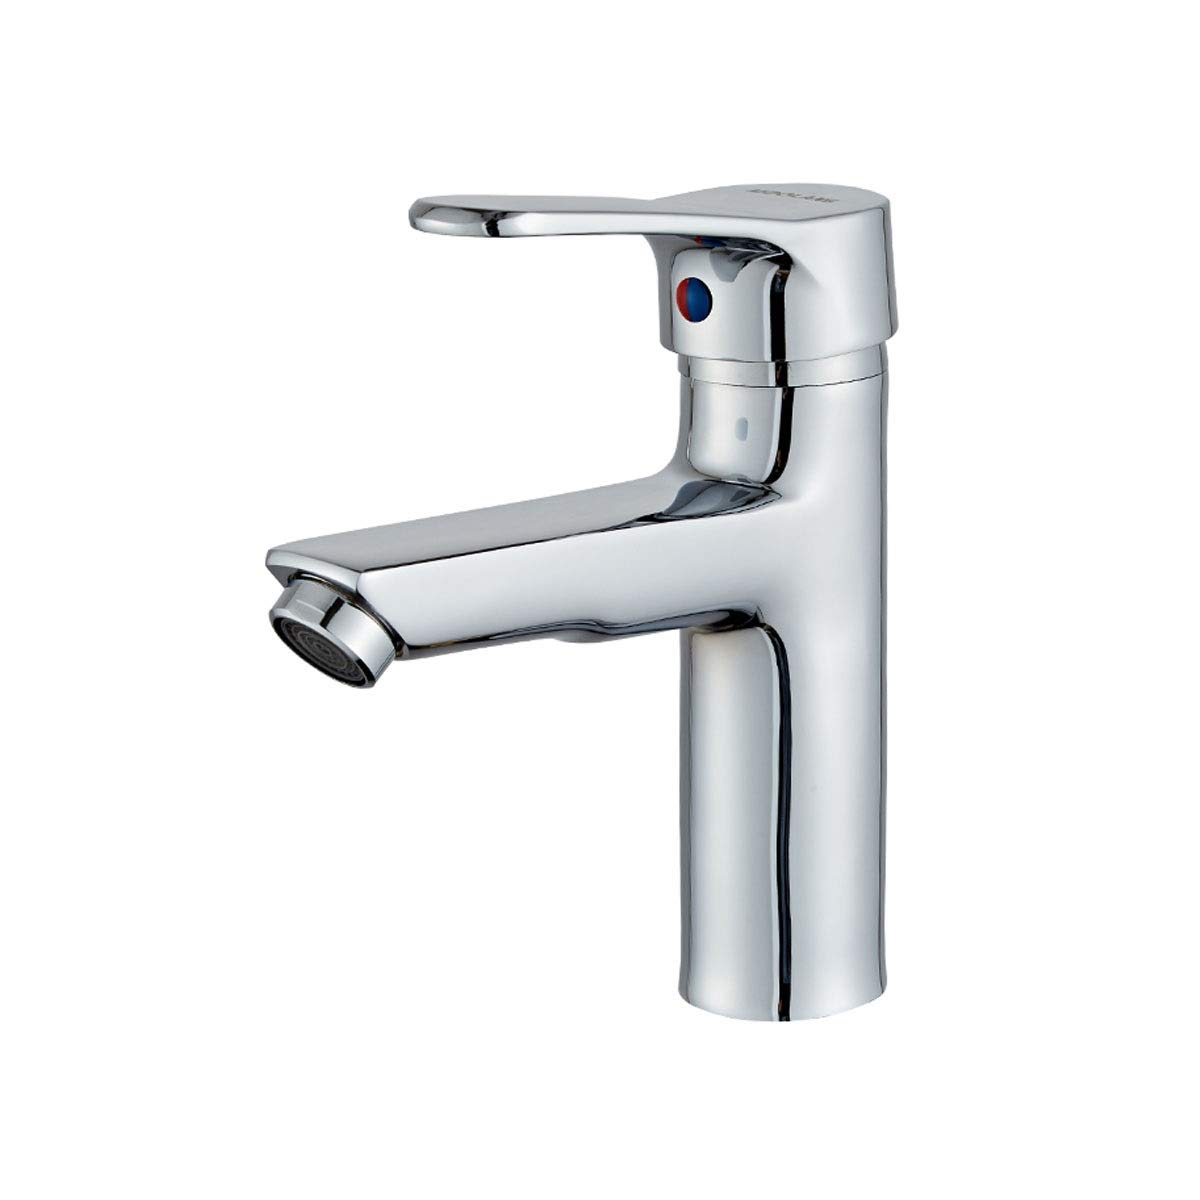 QIANZICAIDIANJIA Faucet, Bathroom Single Hole Basin Faucet, Hot And Cold Copper Wash Basin Bathroom Bathroom Home Bathroom Cabinet Faucet stainless steel faucet (Color : Silver, Size : A) by QIANZICAIDIANJIA